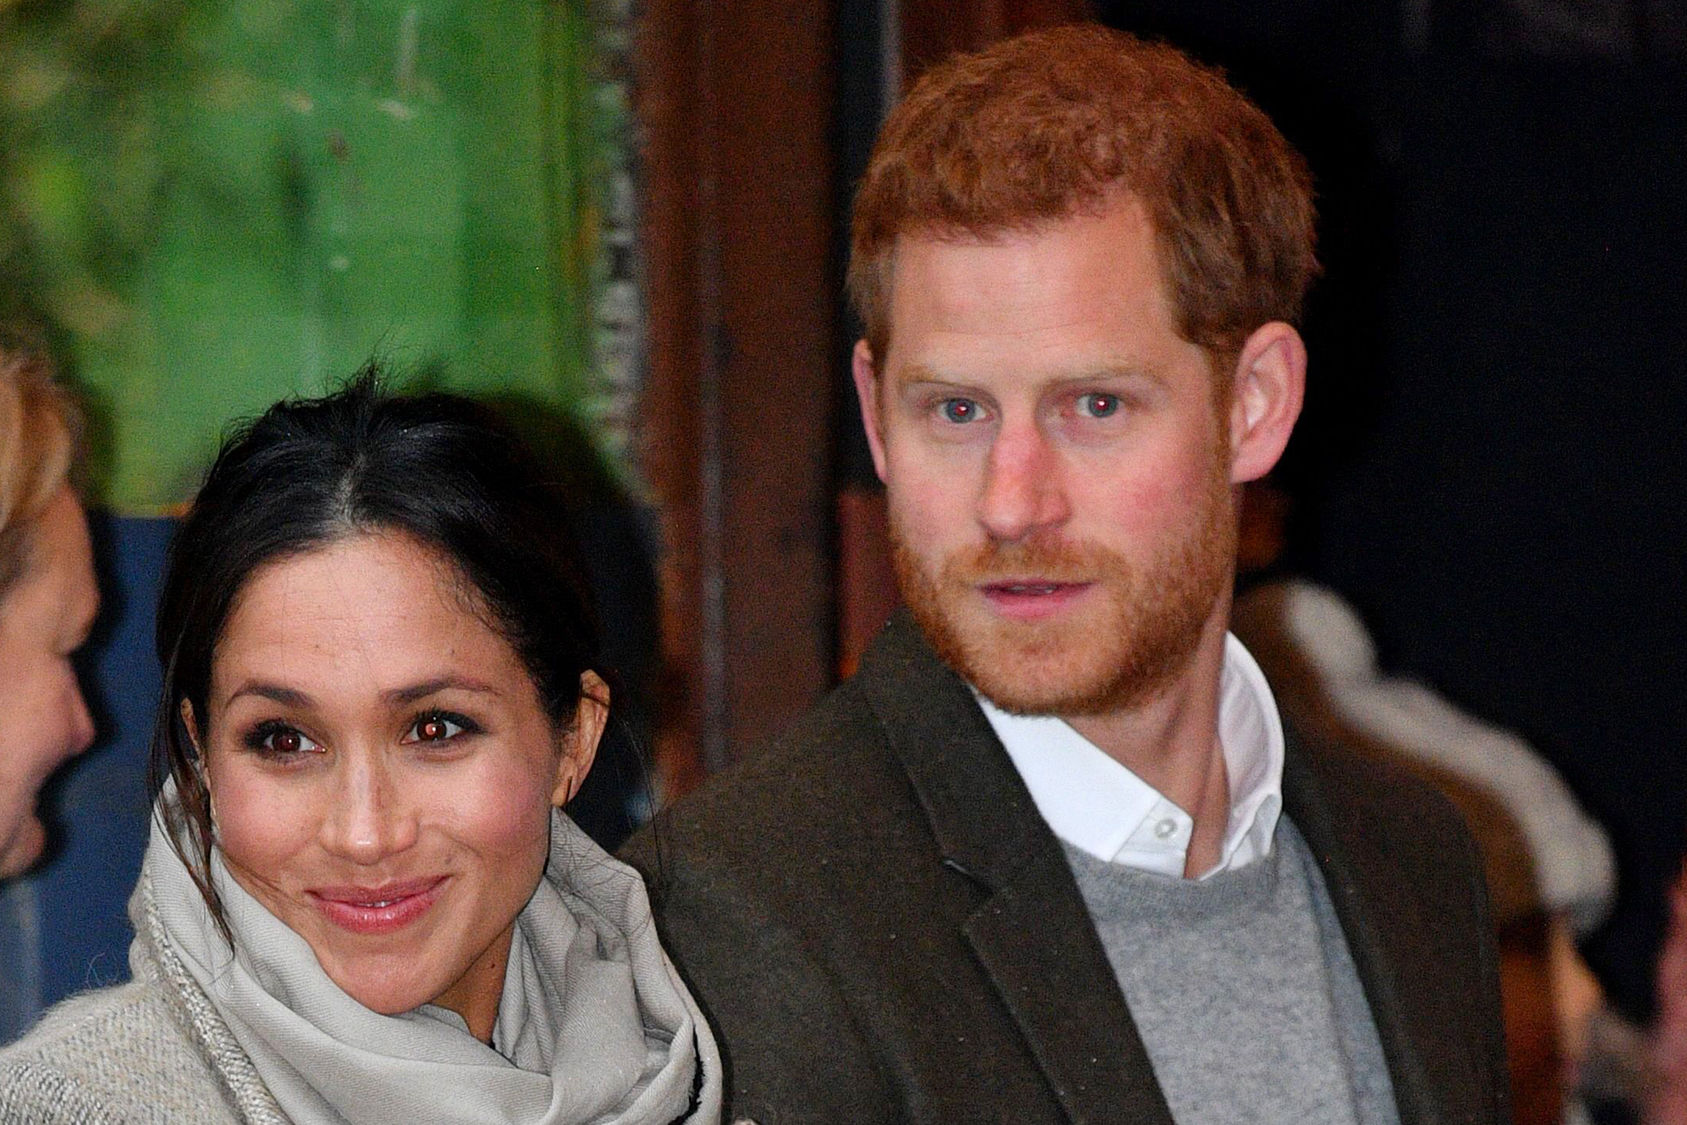 Prince Harry Is Breaking This Major Royal Tradition For The Sweetest Reason